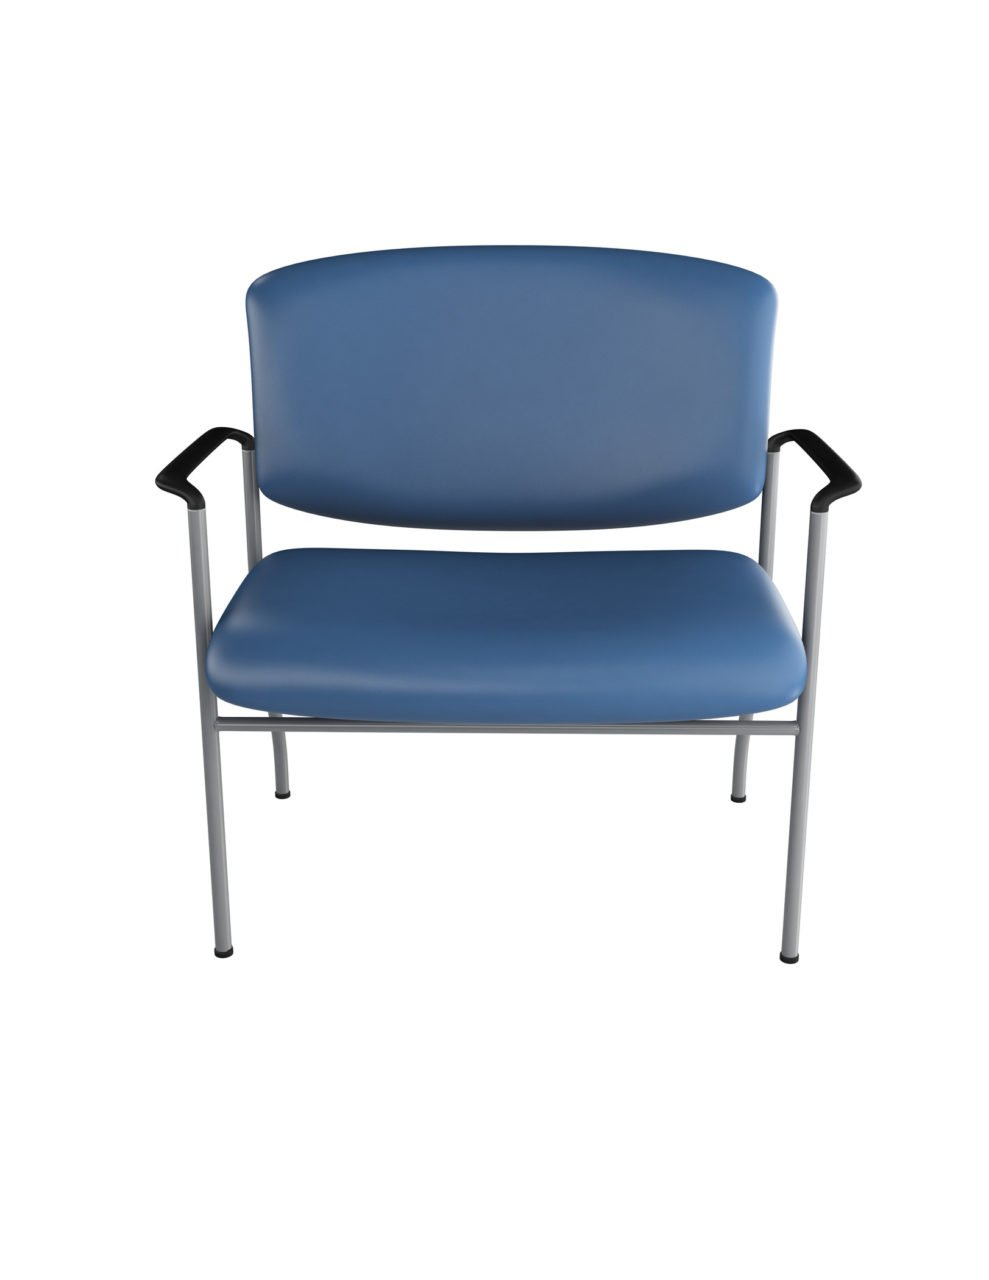 ... 30  Bariatric Guest Chair with Arms from ergoCentric. Equipped with Chrome Frame and Blue ...  sc 1 st  ergoCentric & Bariatric Guest Chair - ergoCentric